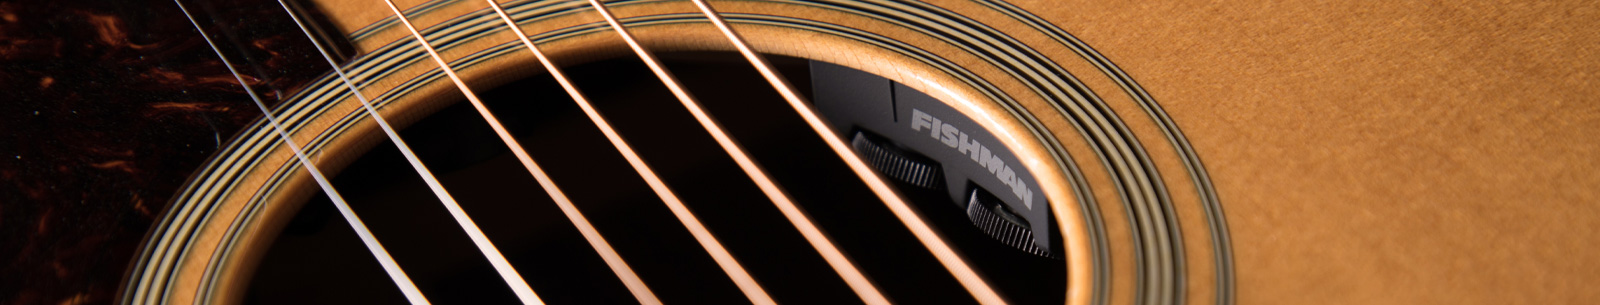 Matrix Infinity Mic Blend Pickup & Preamp System installed on an acoustic guitar soundhole